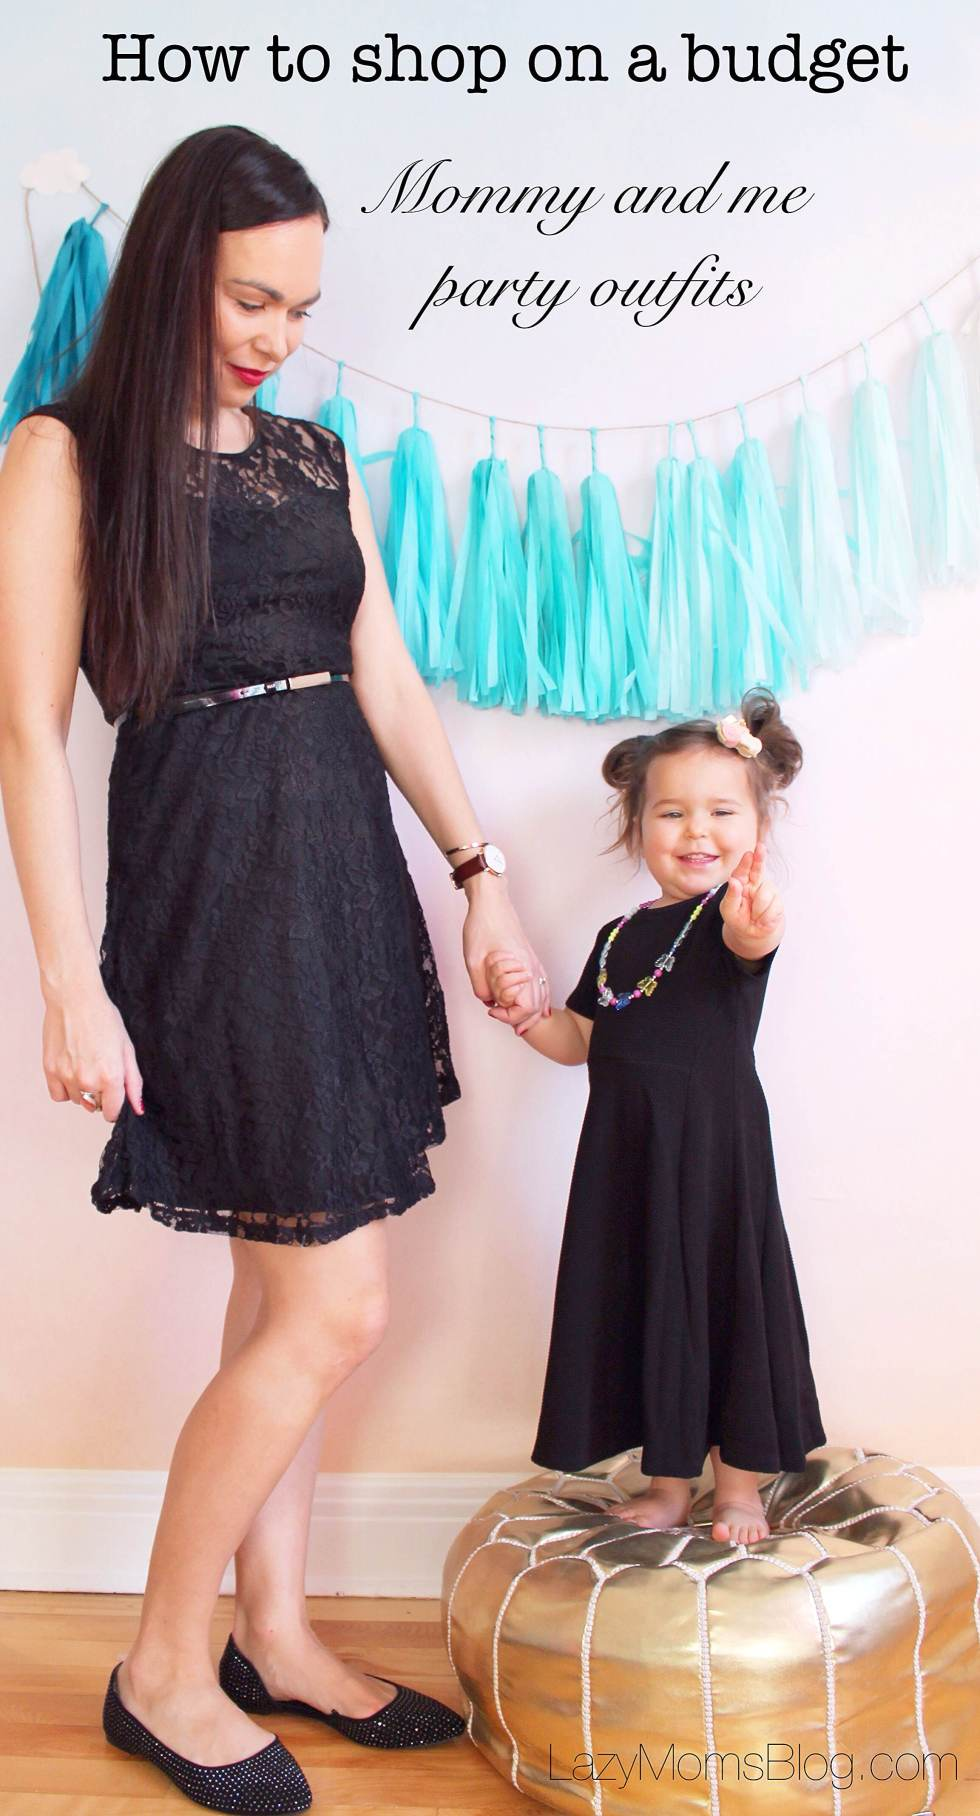 Mommy and me party outfits on a budget